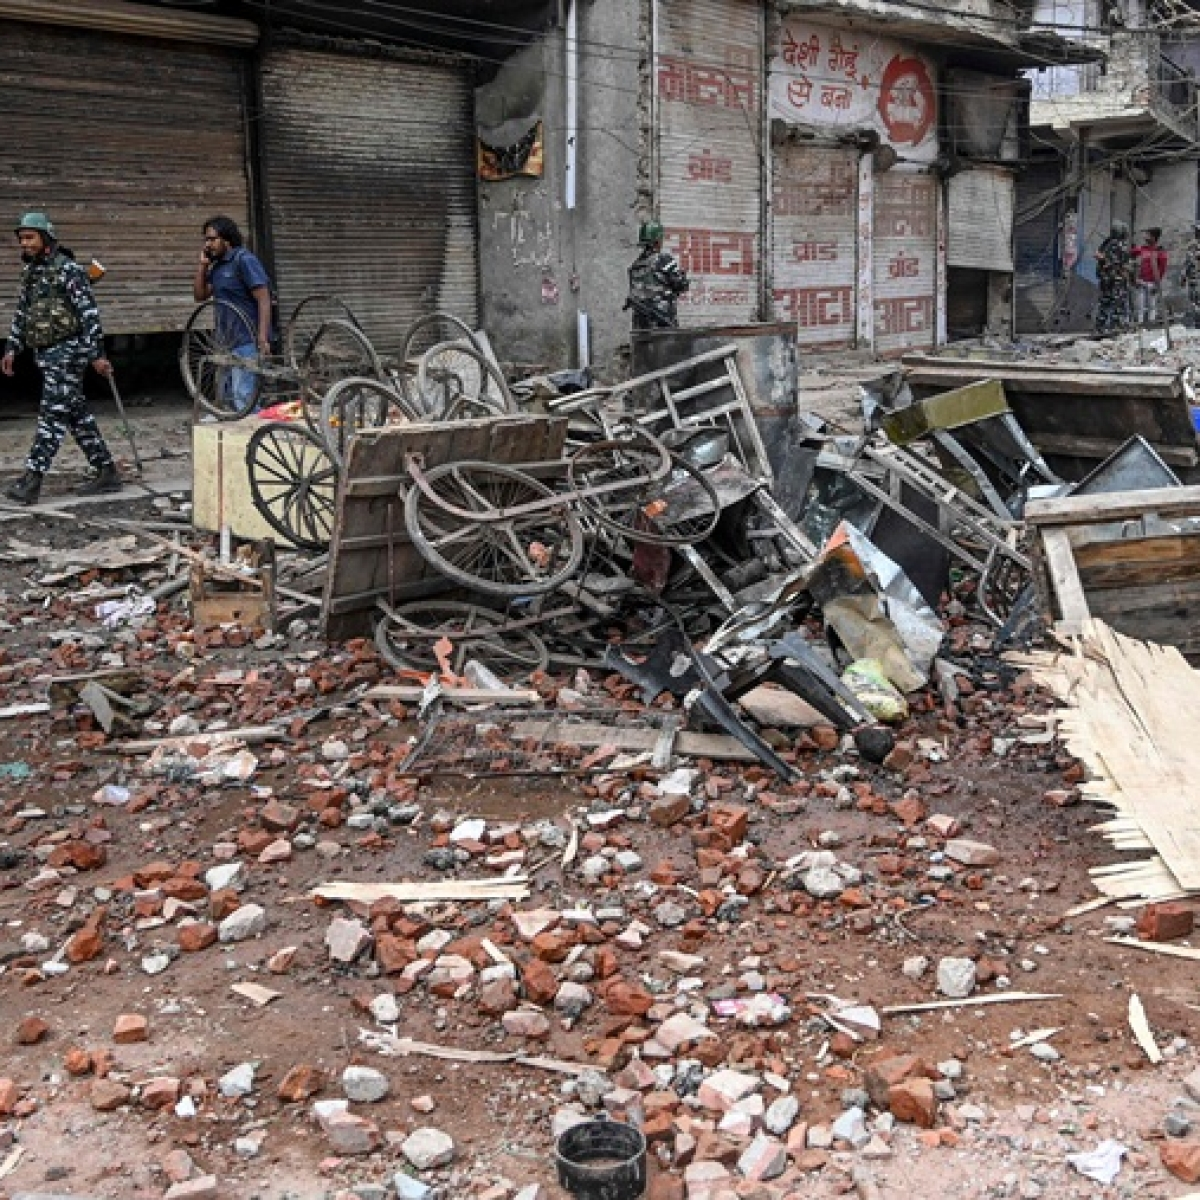 Delhi violence: Death toll rises to 39 as national capital limps back to normalcy